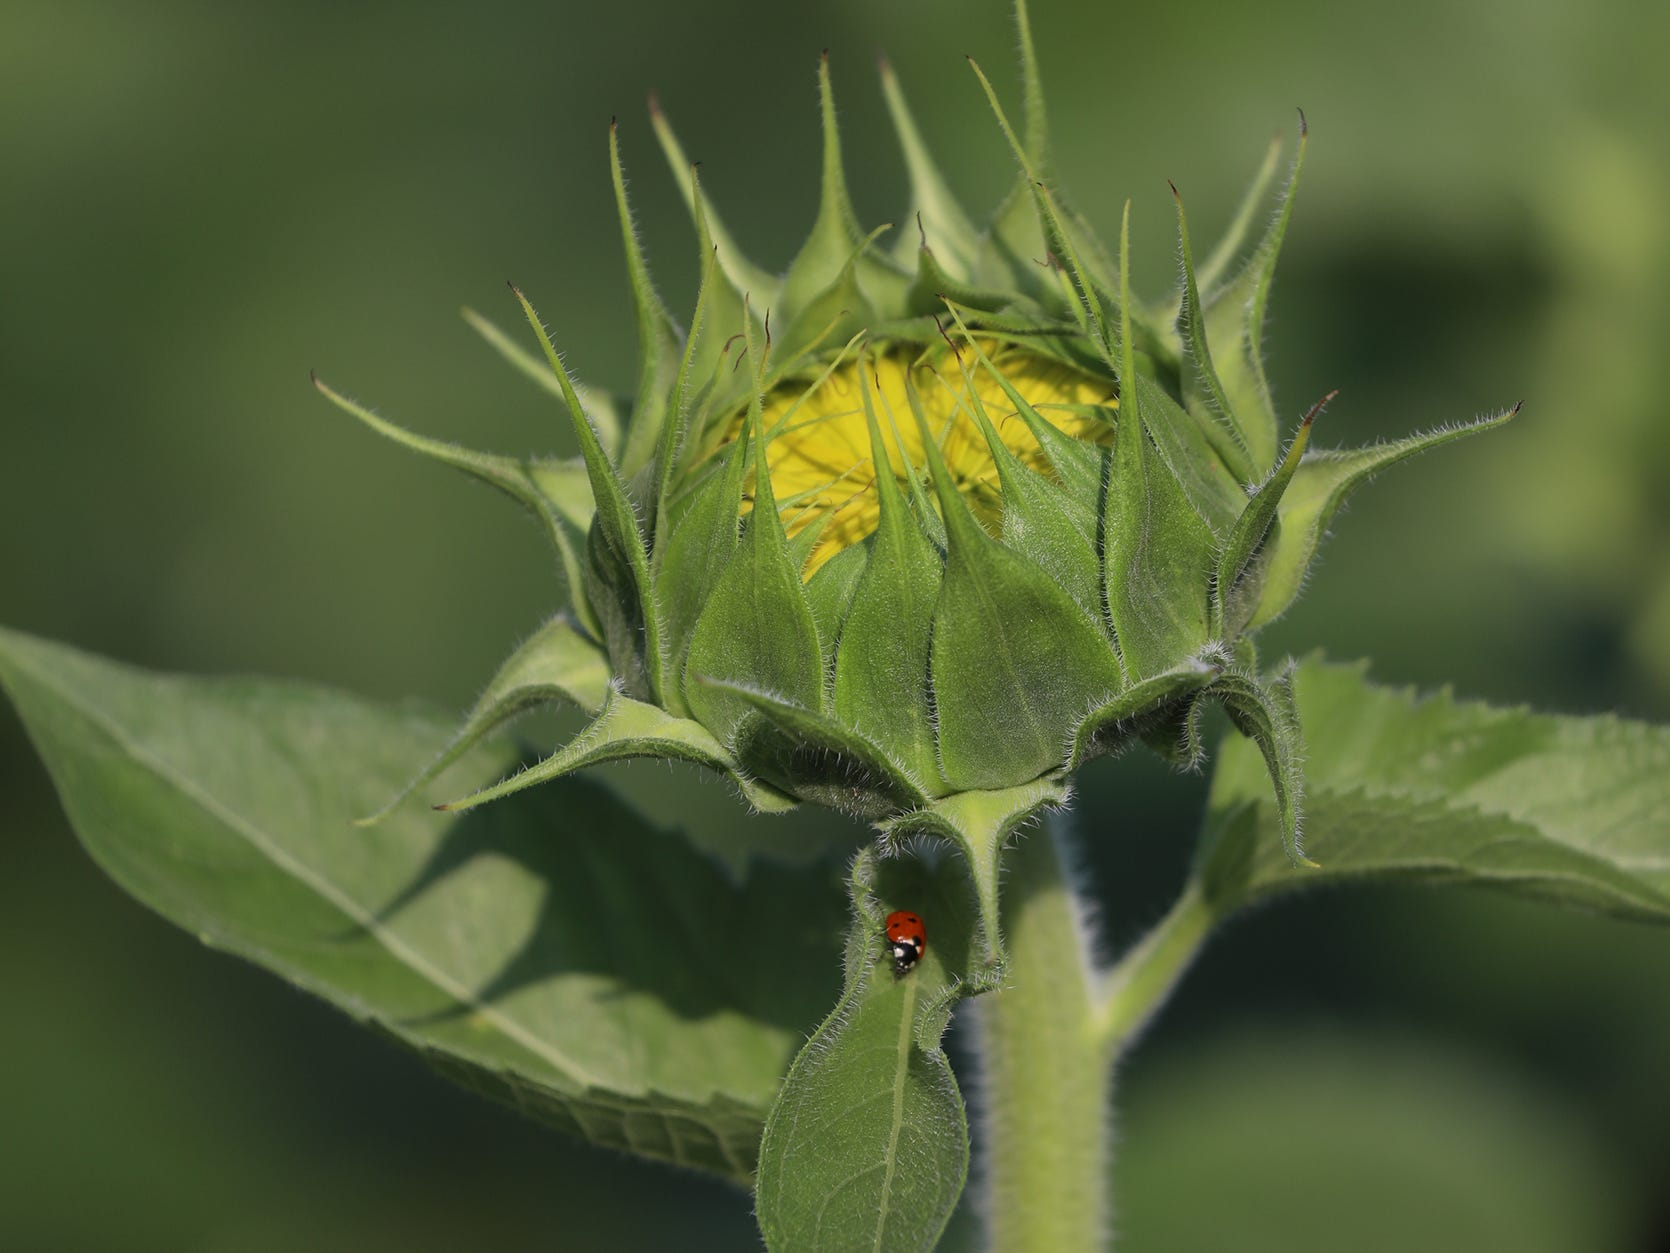 Ladybugs climb among the leaves of the sunflowers.